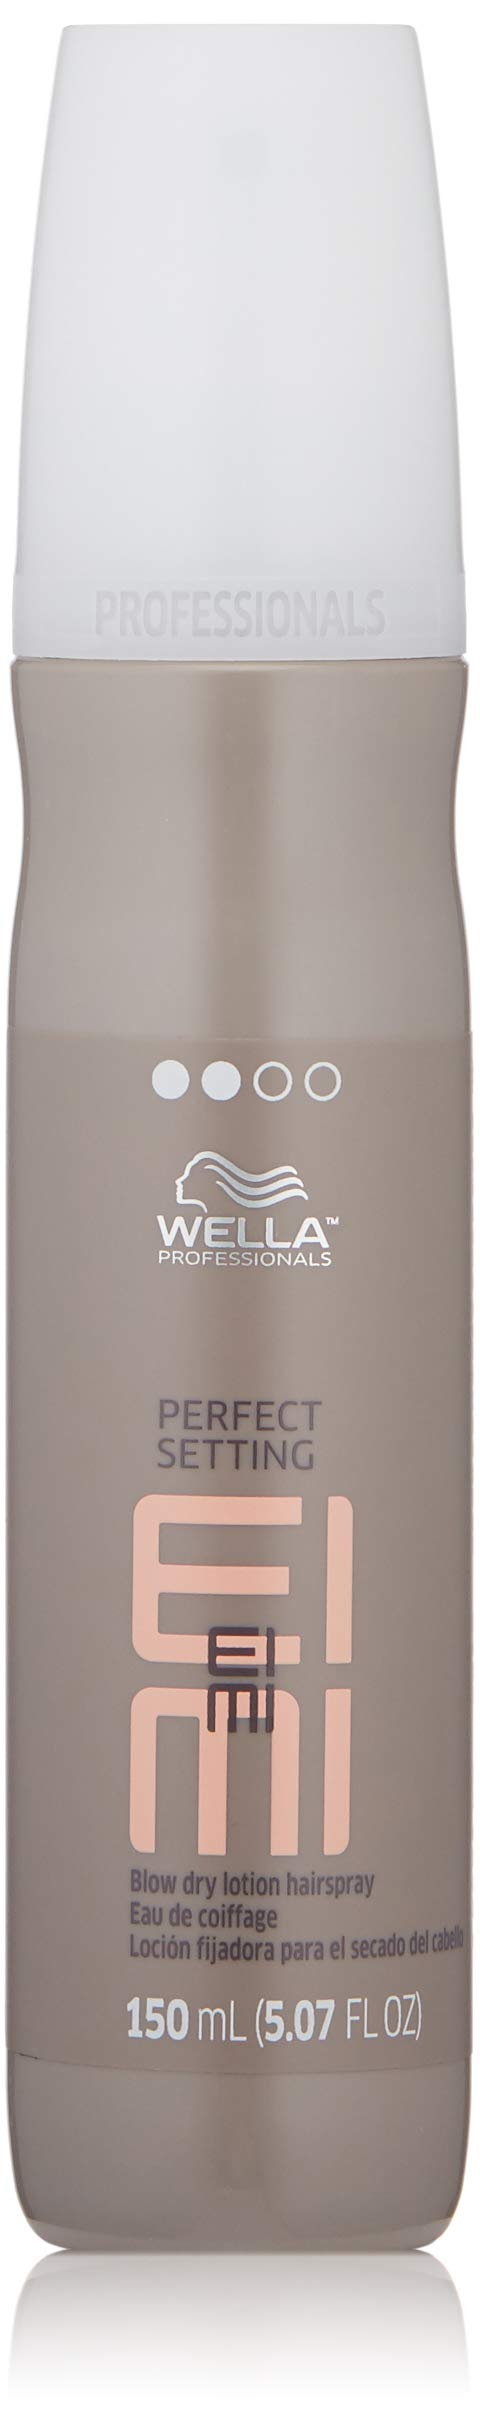 Wella EIMI Perfect Setting Blow Dry Lotion Hairspray 150ml/5.07oz by Wella